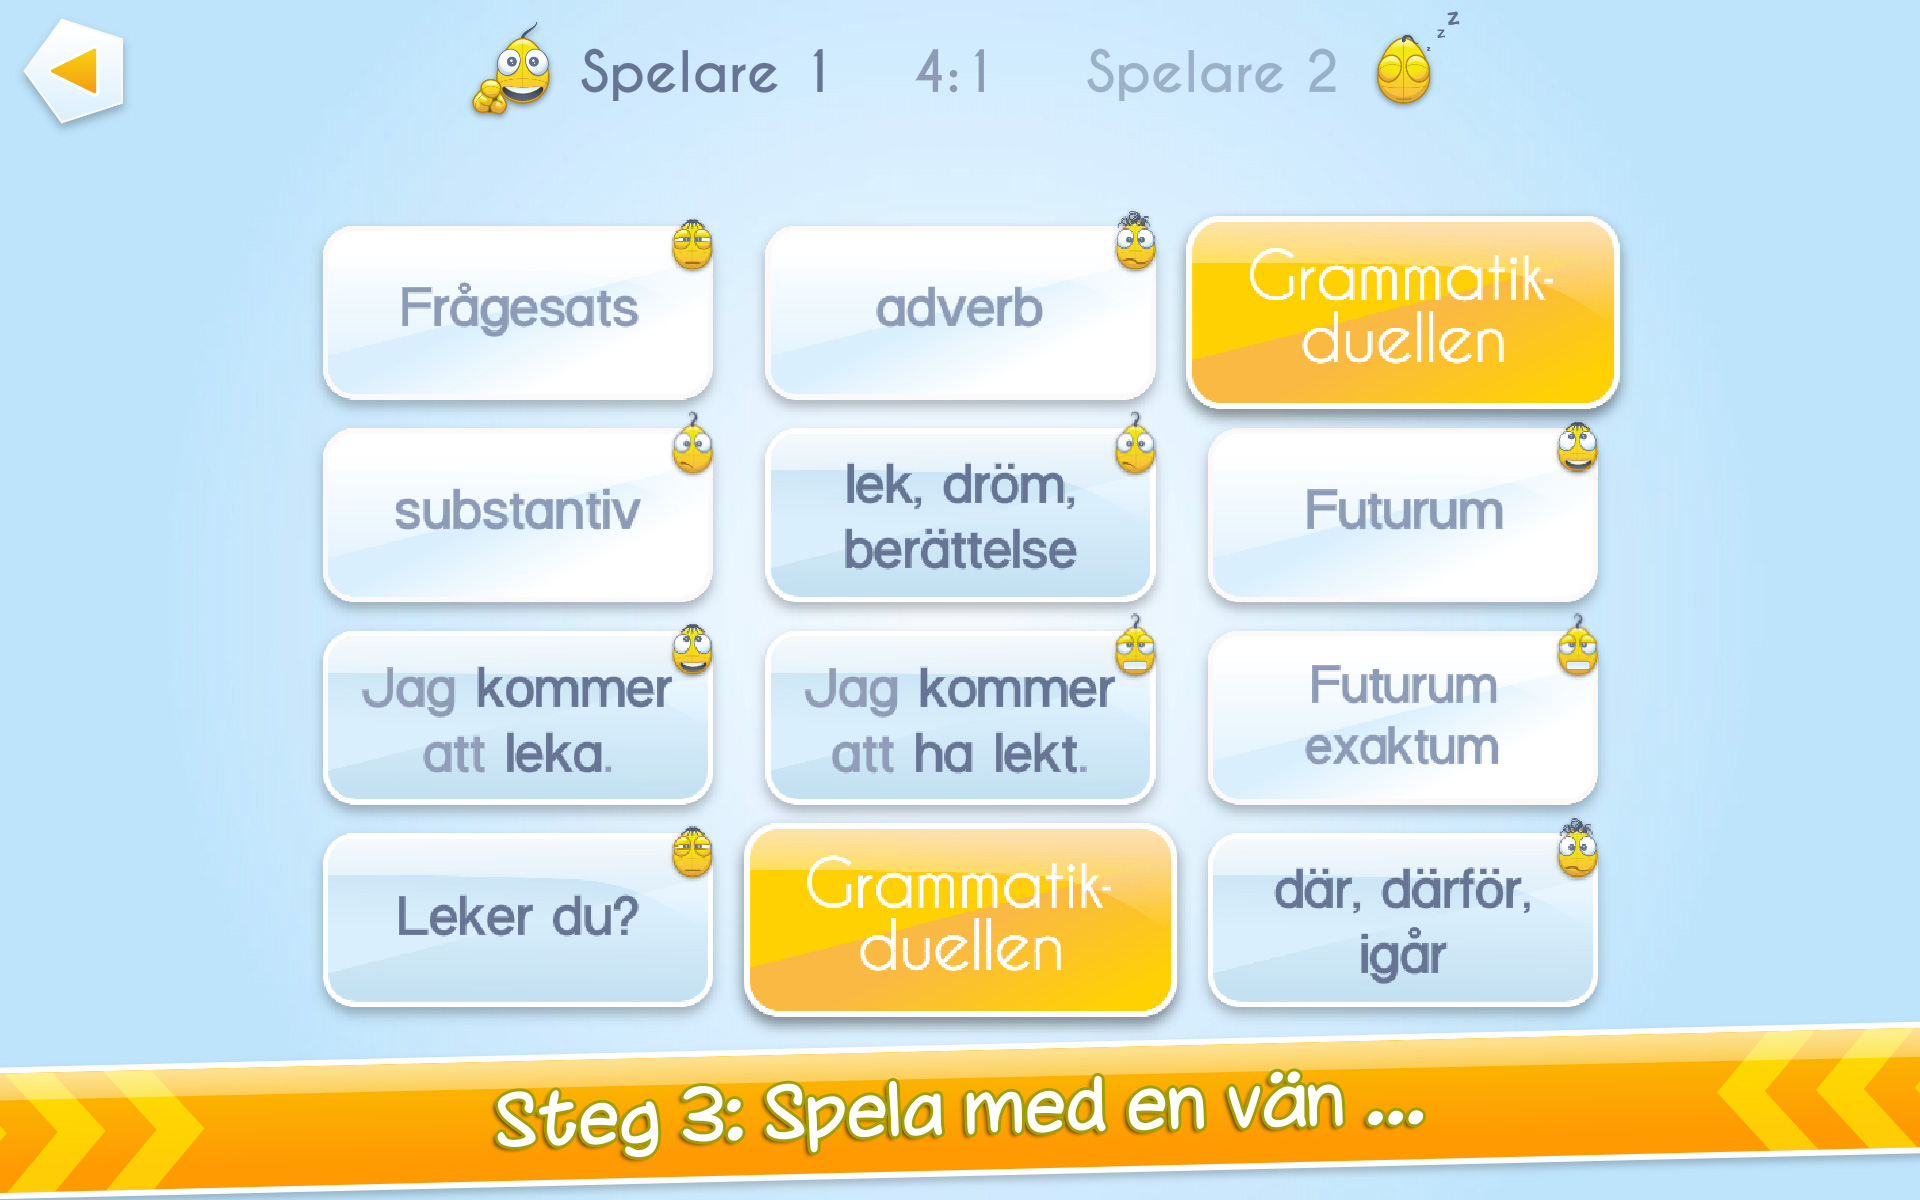 Android_Grammar_Challenge_Train_Your_English_Skills_app_for_kids_Jan_Essig_5